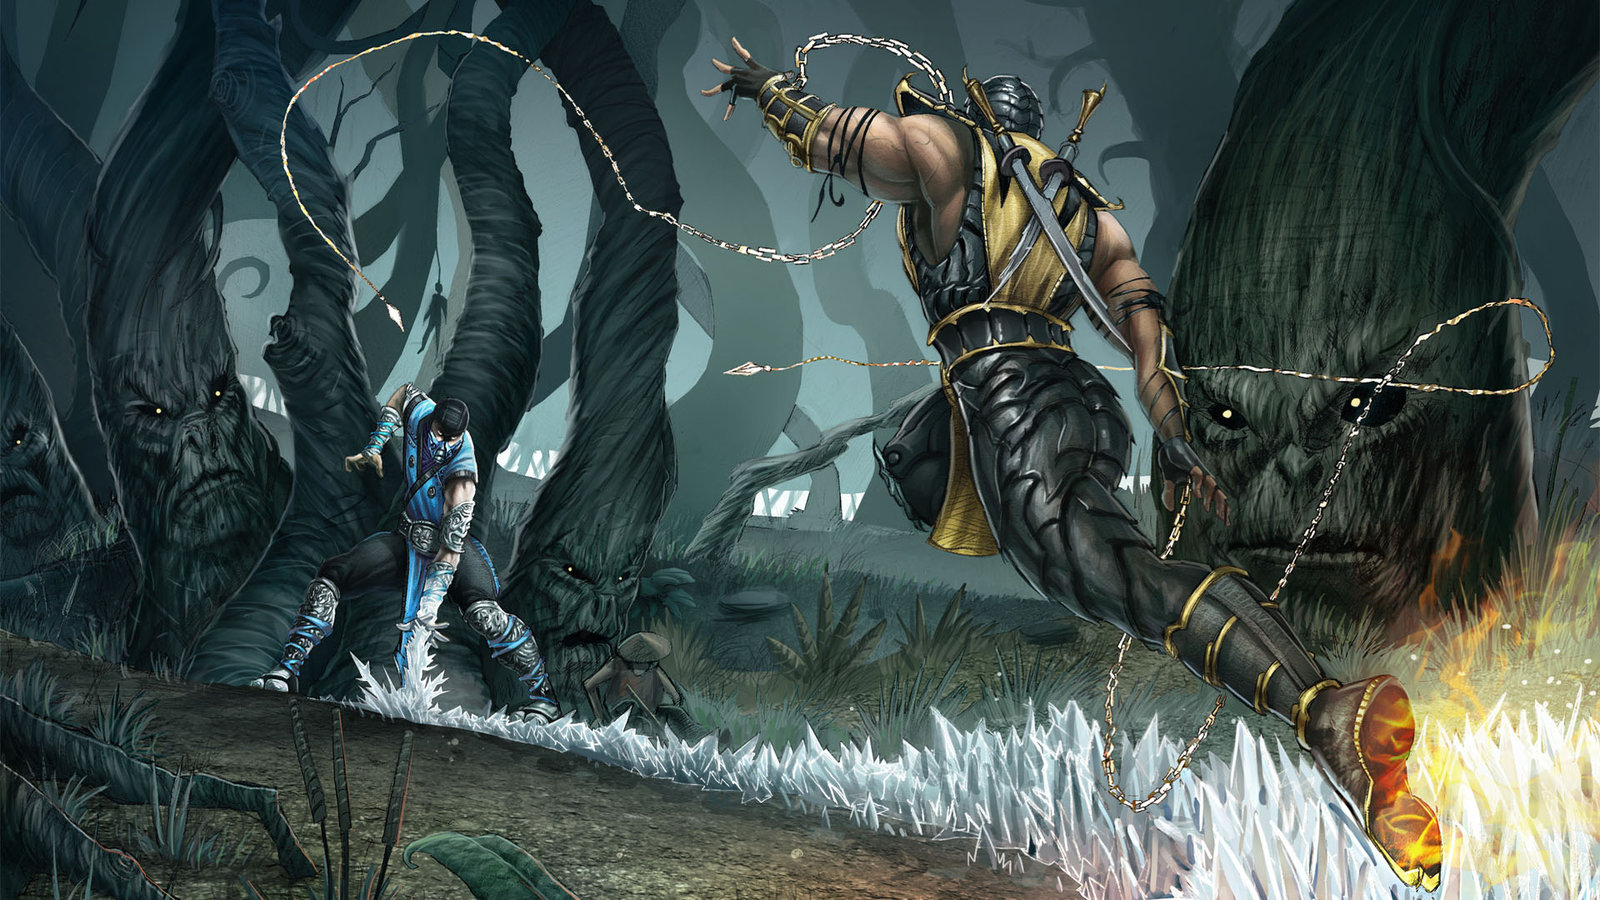 Mortal kombat HD & Widescreen Wallpaper 0.607515041054087